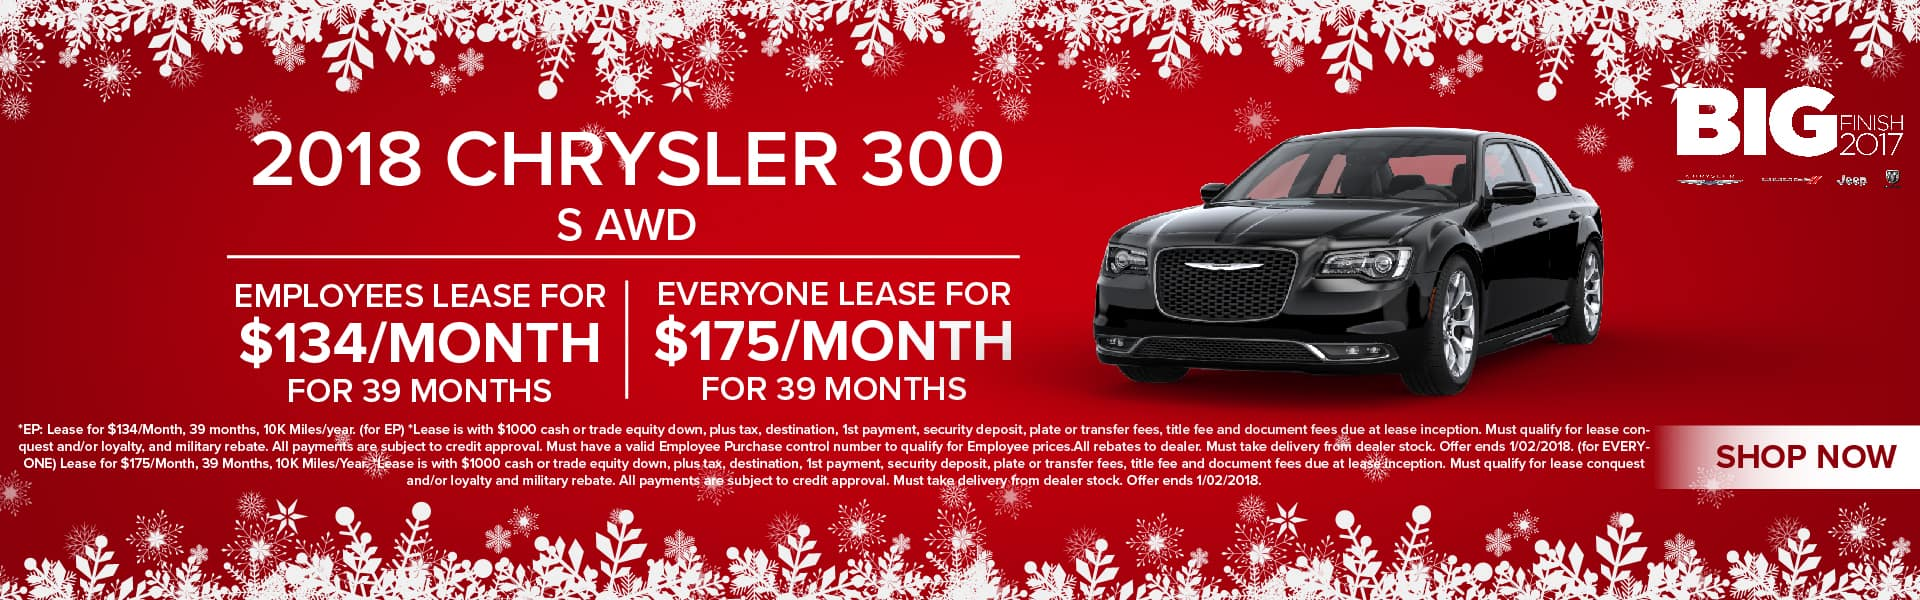 Lafontaine Chrysler Dodge Jeep >> LaFontaine Chrysler Dodge Jeep Ram FIAT of Lansing | Chrysler, Dodge, Jeep, RAM, FIAT Dealer in ...